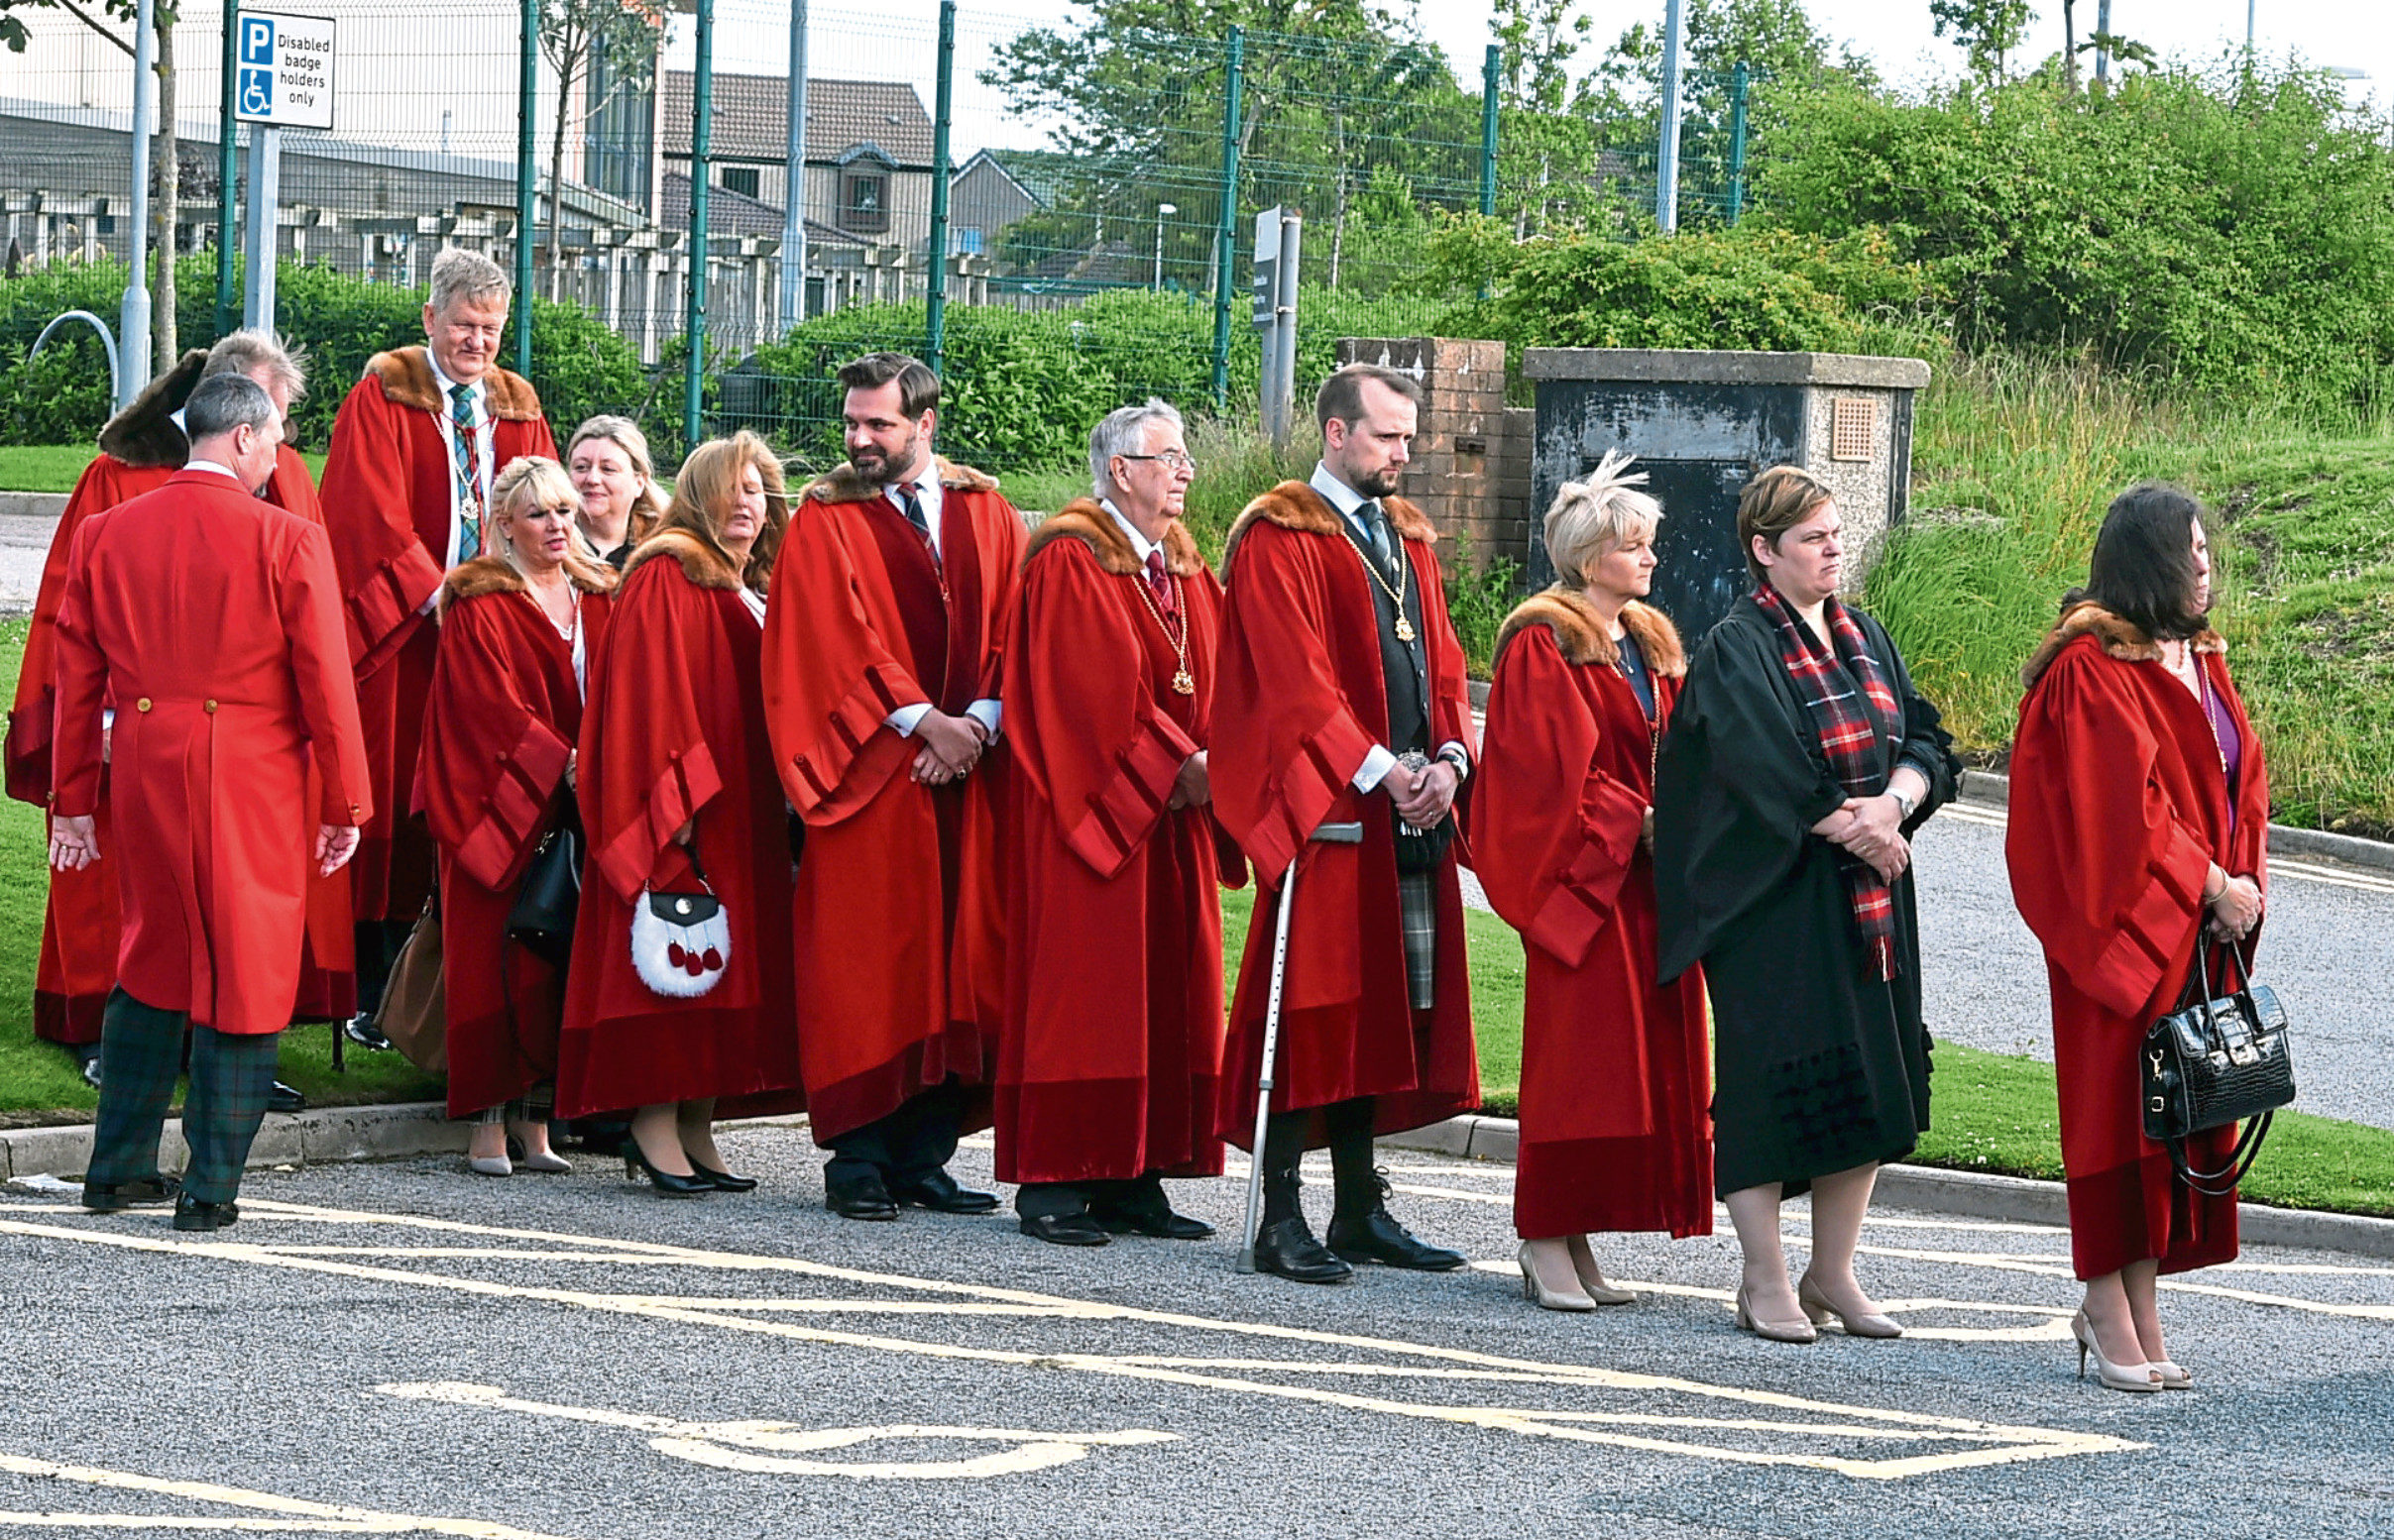 Friends and colleagues gather in civic red robes for the funeral of Bridge of Don councillor Sandy Stuart, who died on Wednesday aged 86